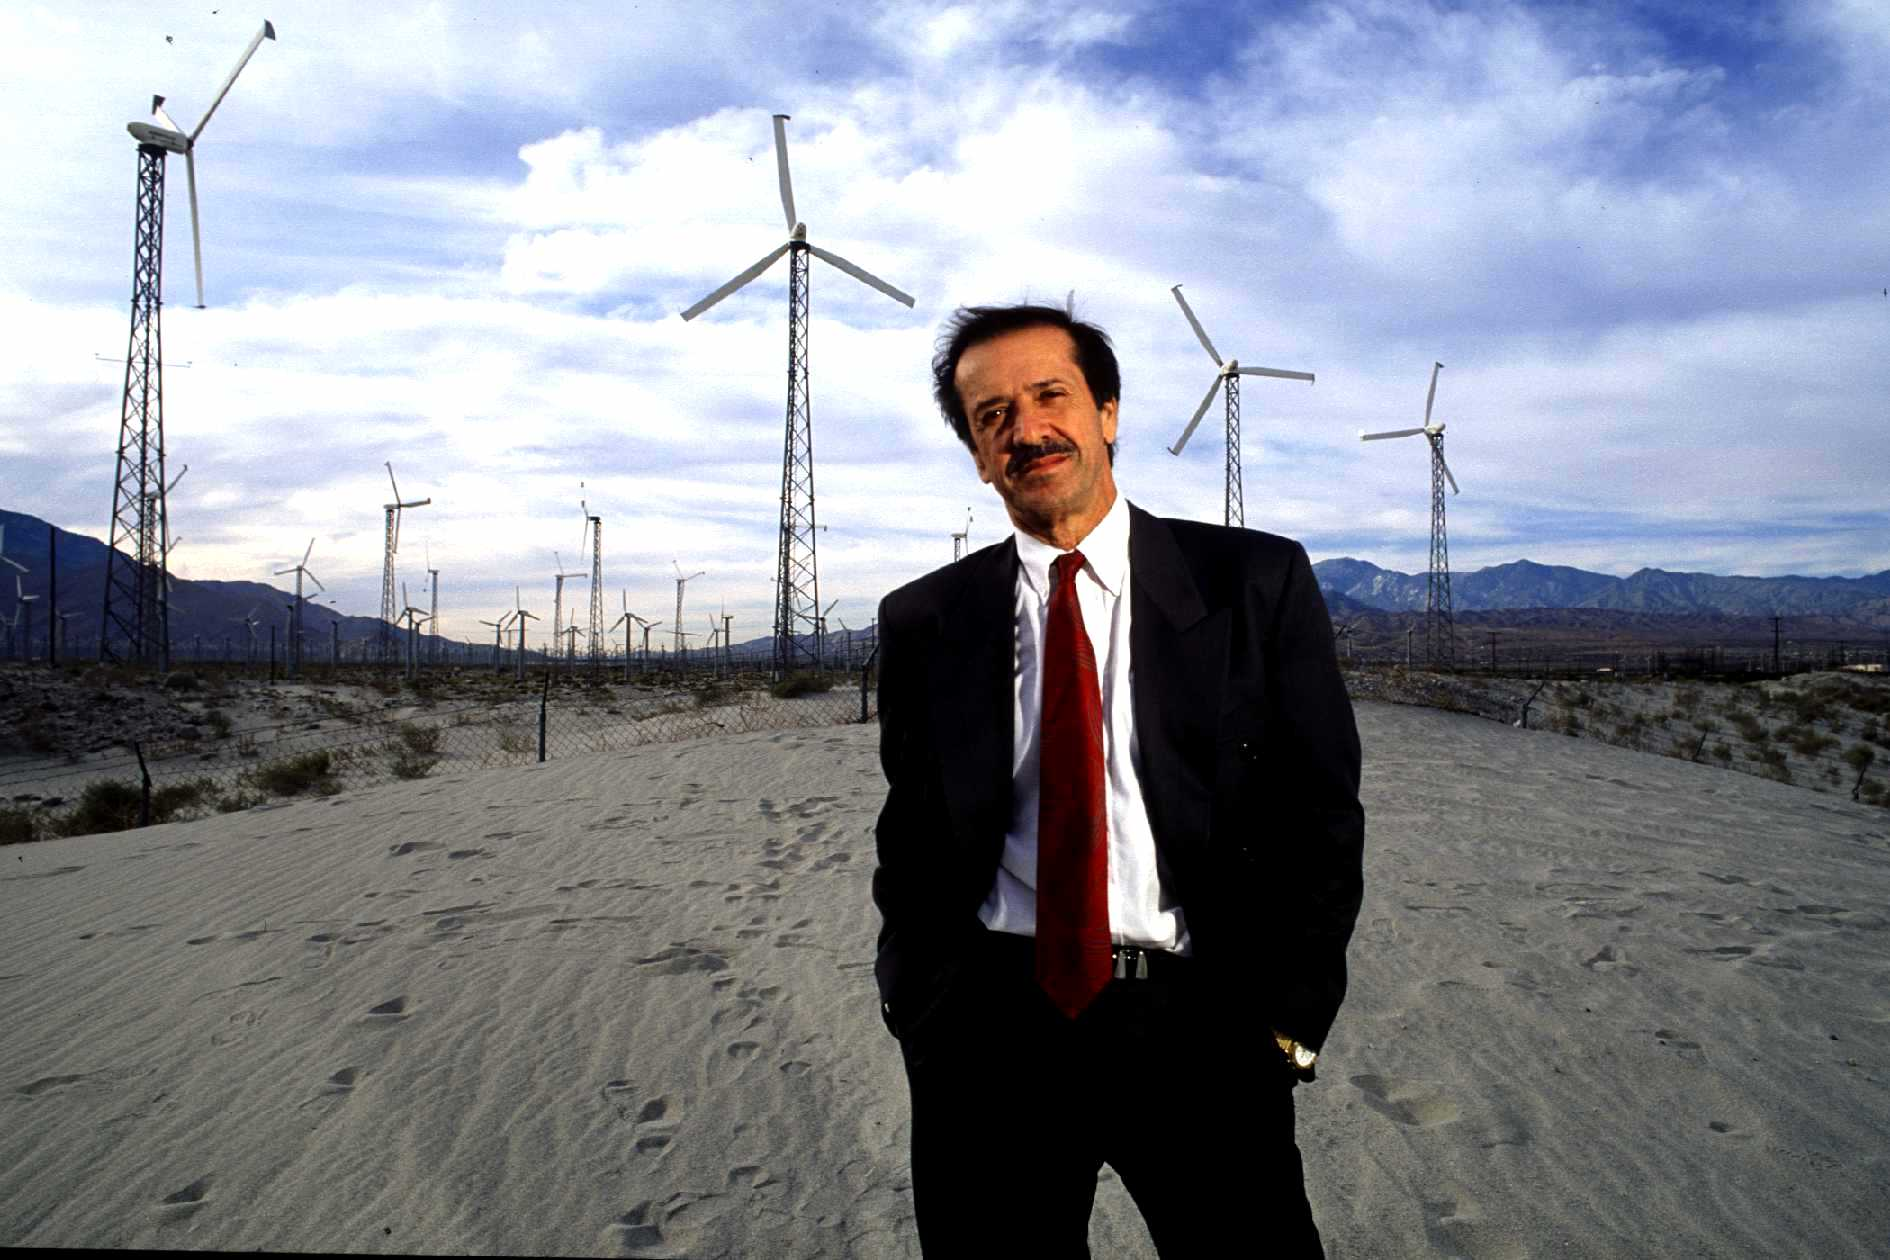 Sonny Bono poses near with Wind Farm fields in 1991 | Photo: Getty Images